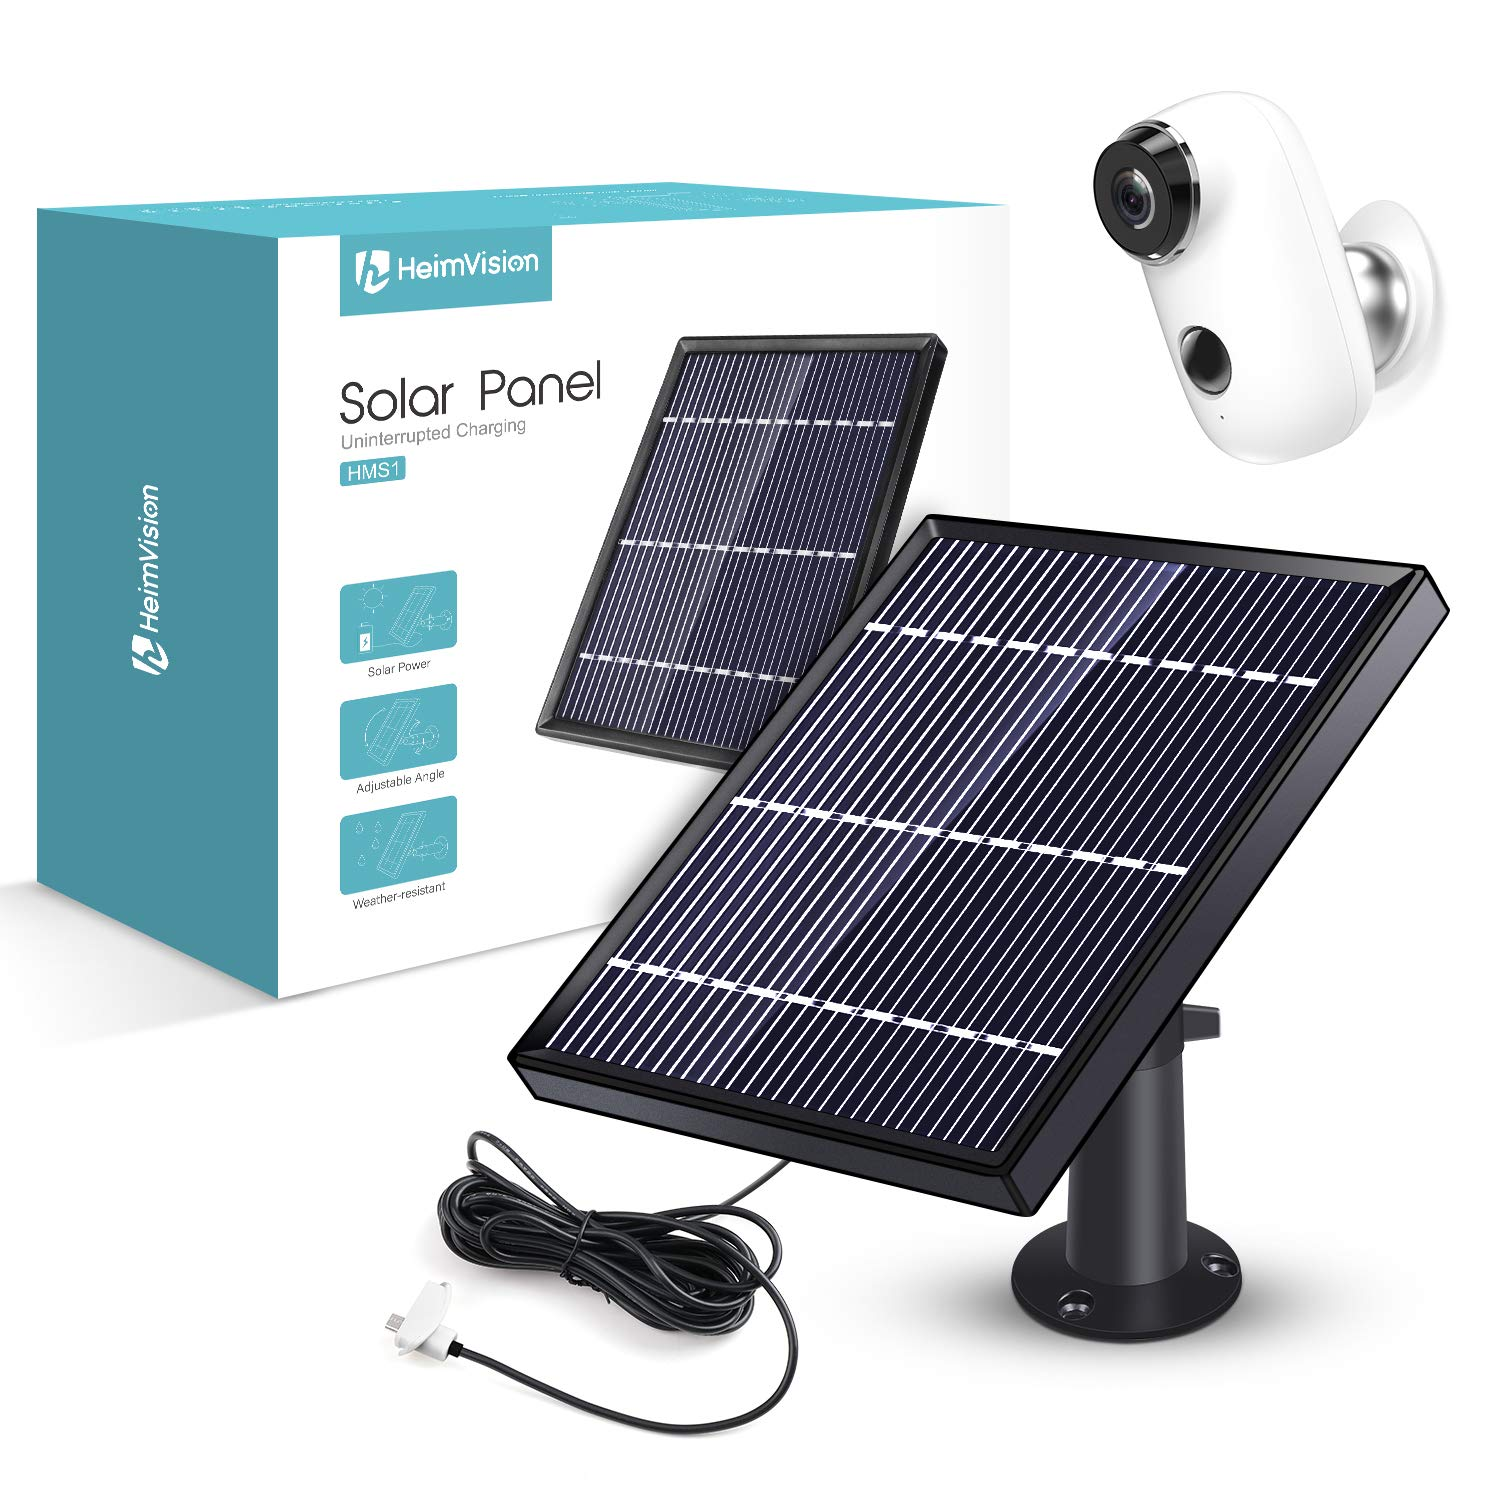 Solar Panel Compatible with HeimVision HMD2 Rechargeable Battery Security Camera, Waterproof 3.2W/ 5.5V Solar Panel with 13ft/ 4m USB Cable, Support Continuously Supply Power for Security Camera by heimvision